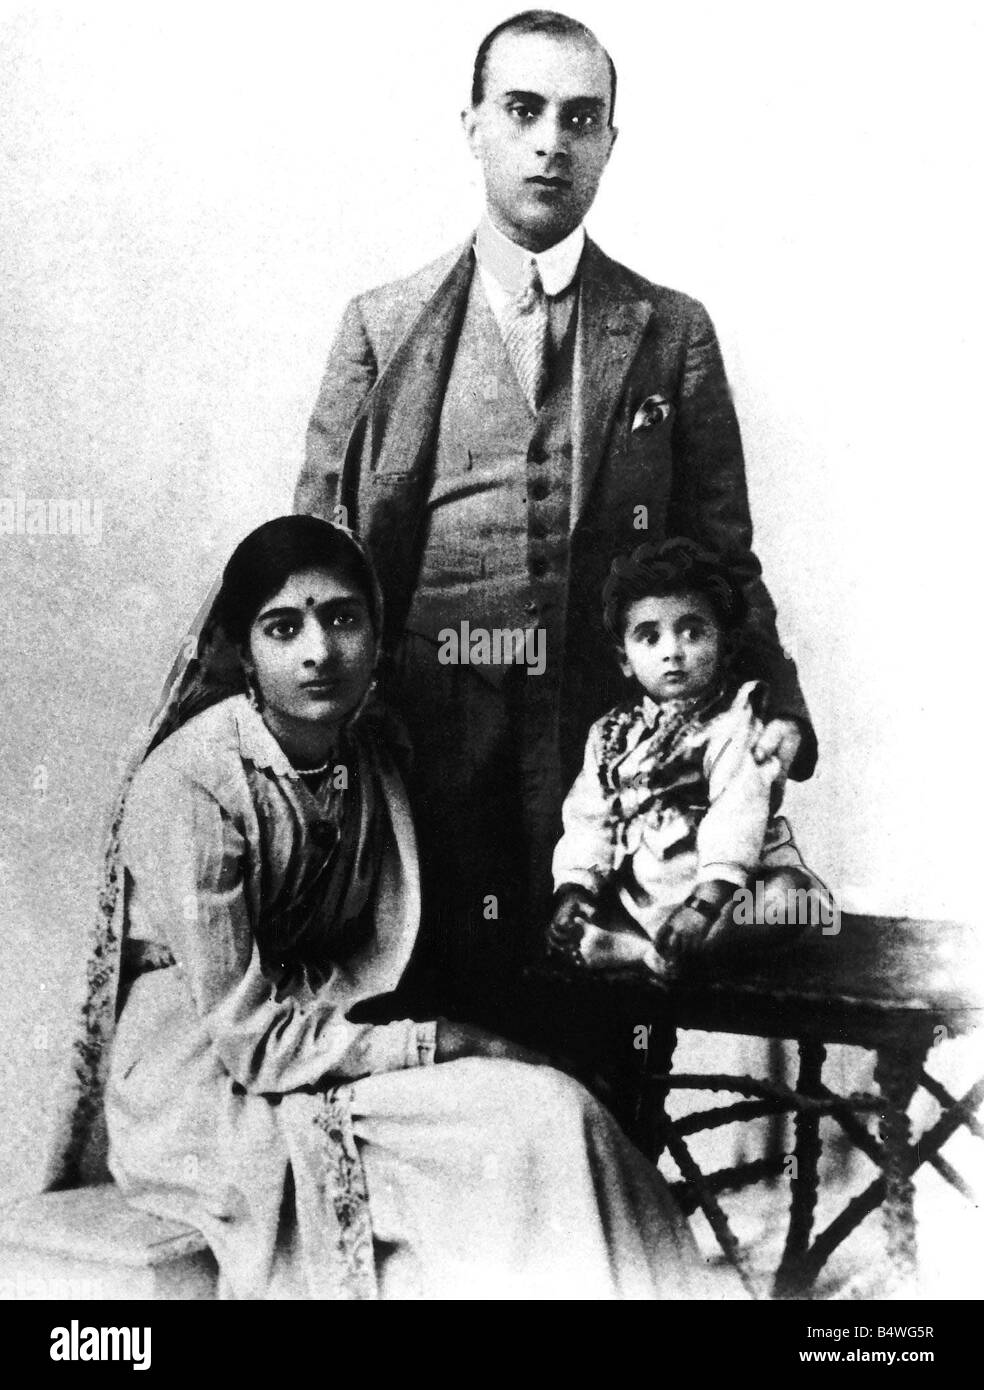 Indira Gandhi in1918 approx with her parents the nationalist leader Jawaharlal Nehru and and his wife - Stock Image